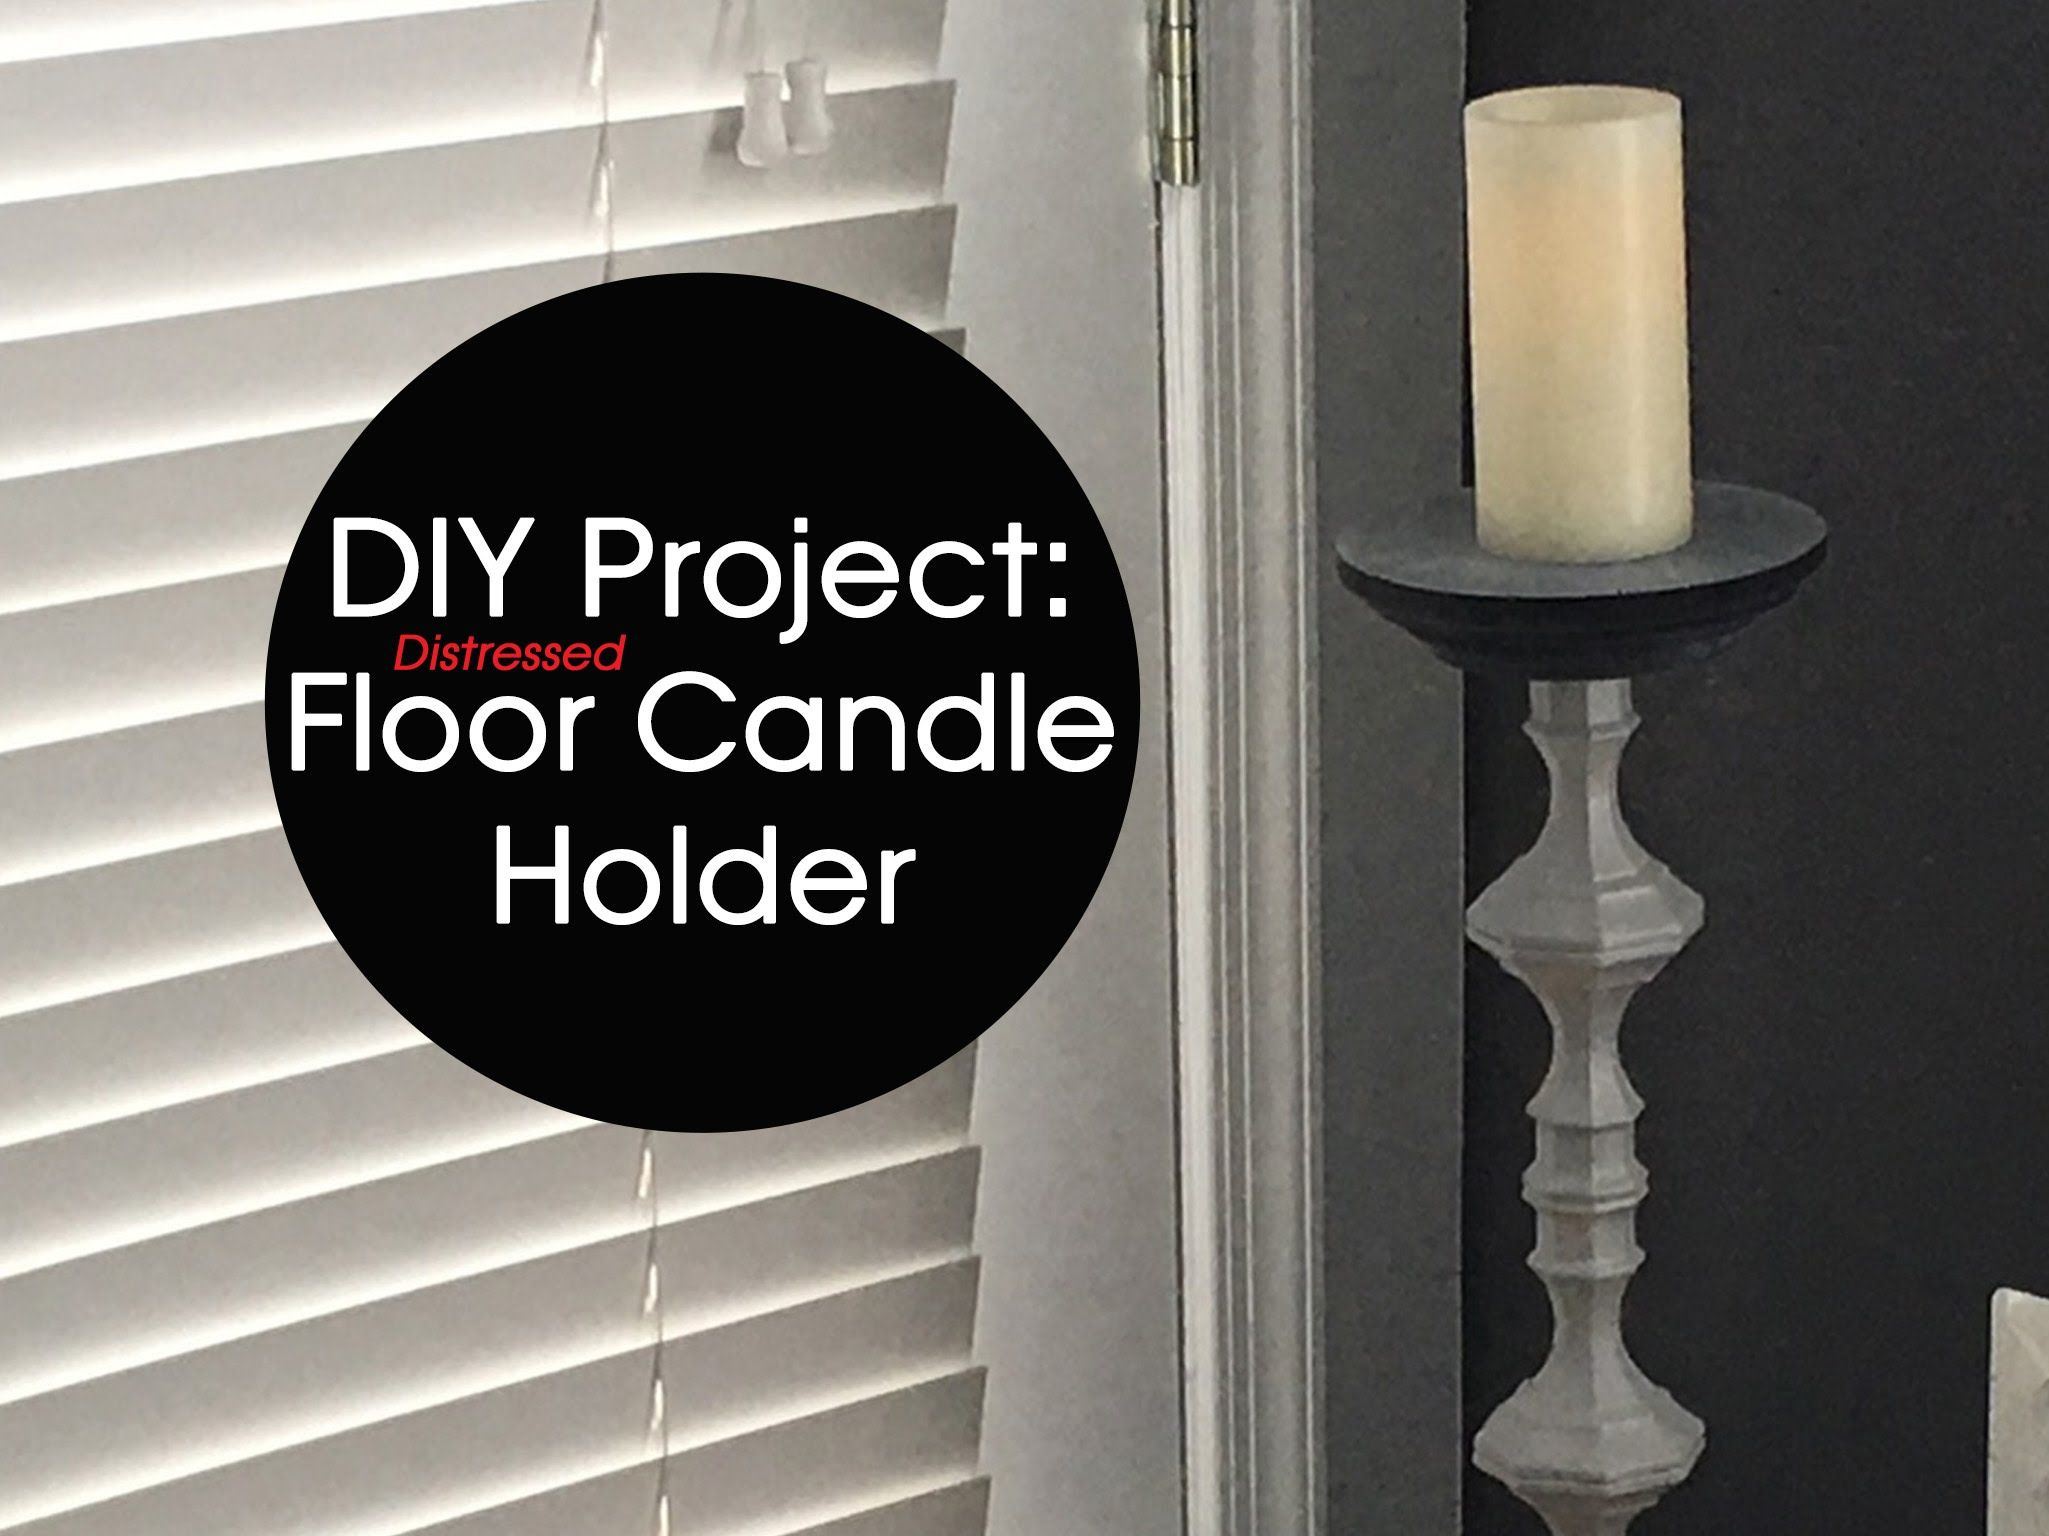 Diy distressed floor candle holder twotoned effect do it